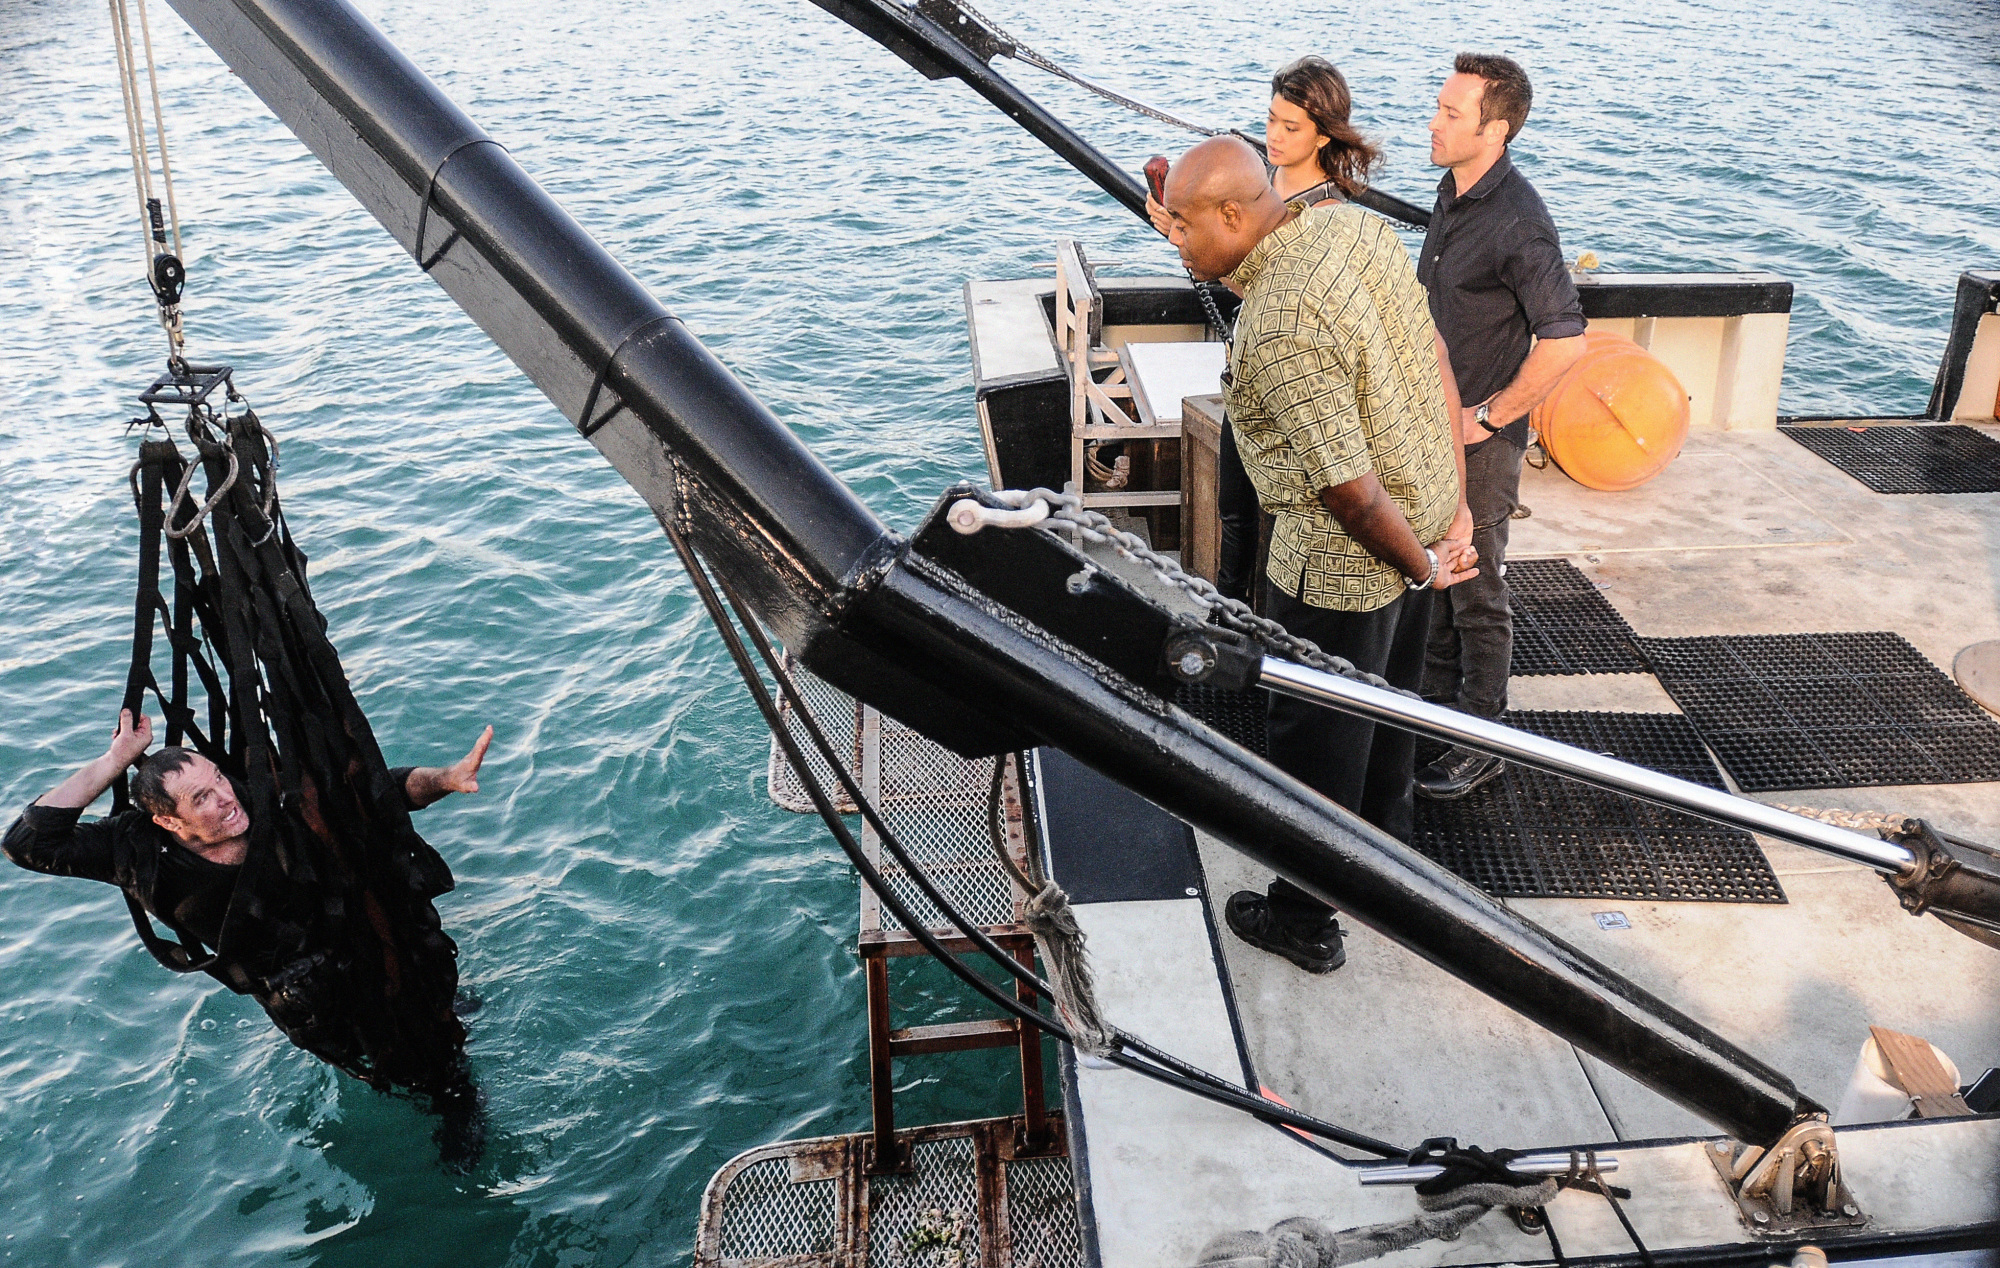 Chi McBride as Lou Grover, Grace Park as Kono Kalakaua, and Alex O'Loughlin as Steve McGarrett